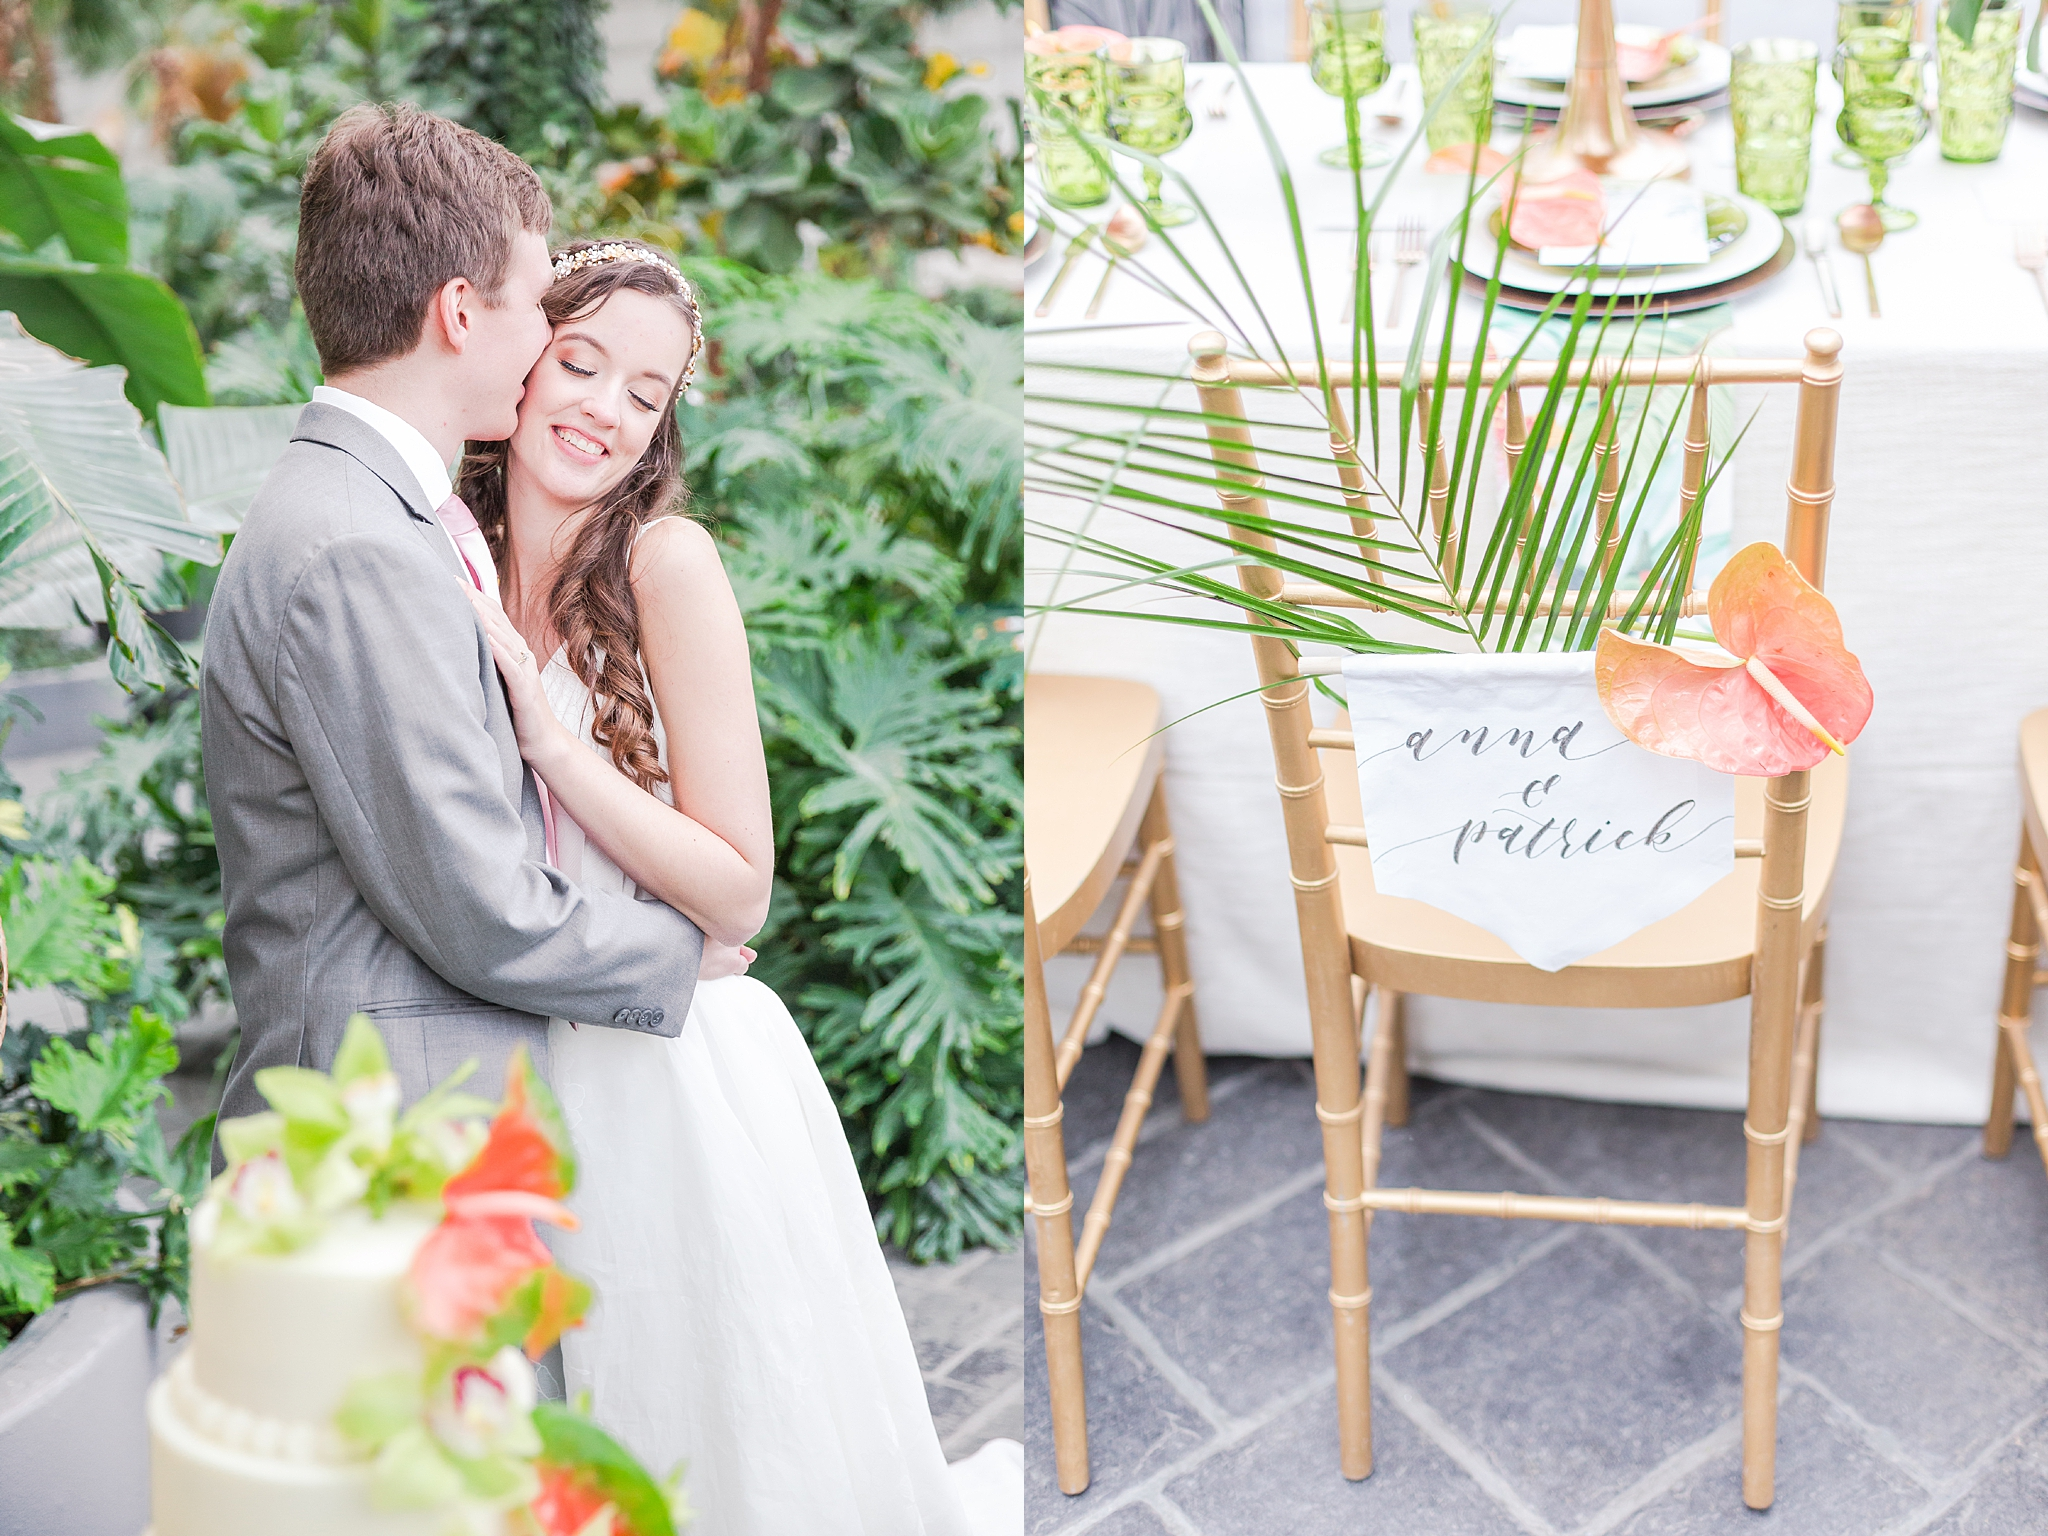 colorful-tropical-wedding-photos-at-the-crystal-gardens-in-chicago-illinois-by-courtney-carolyn-photography_0045.jpg